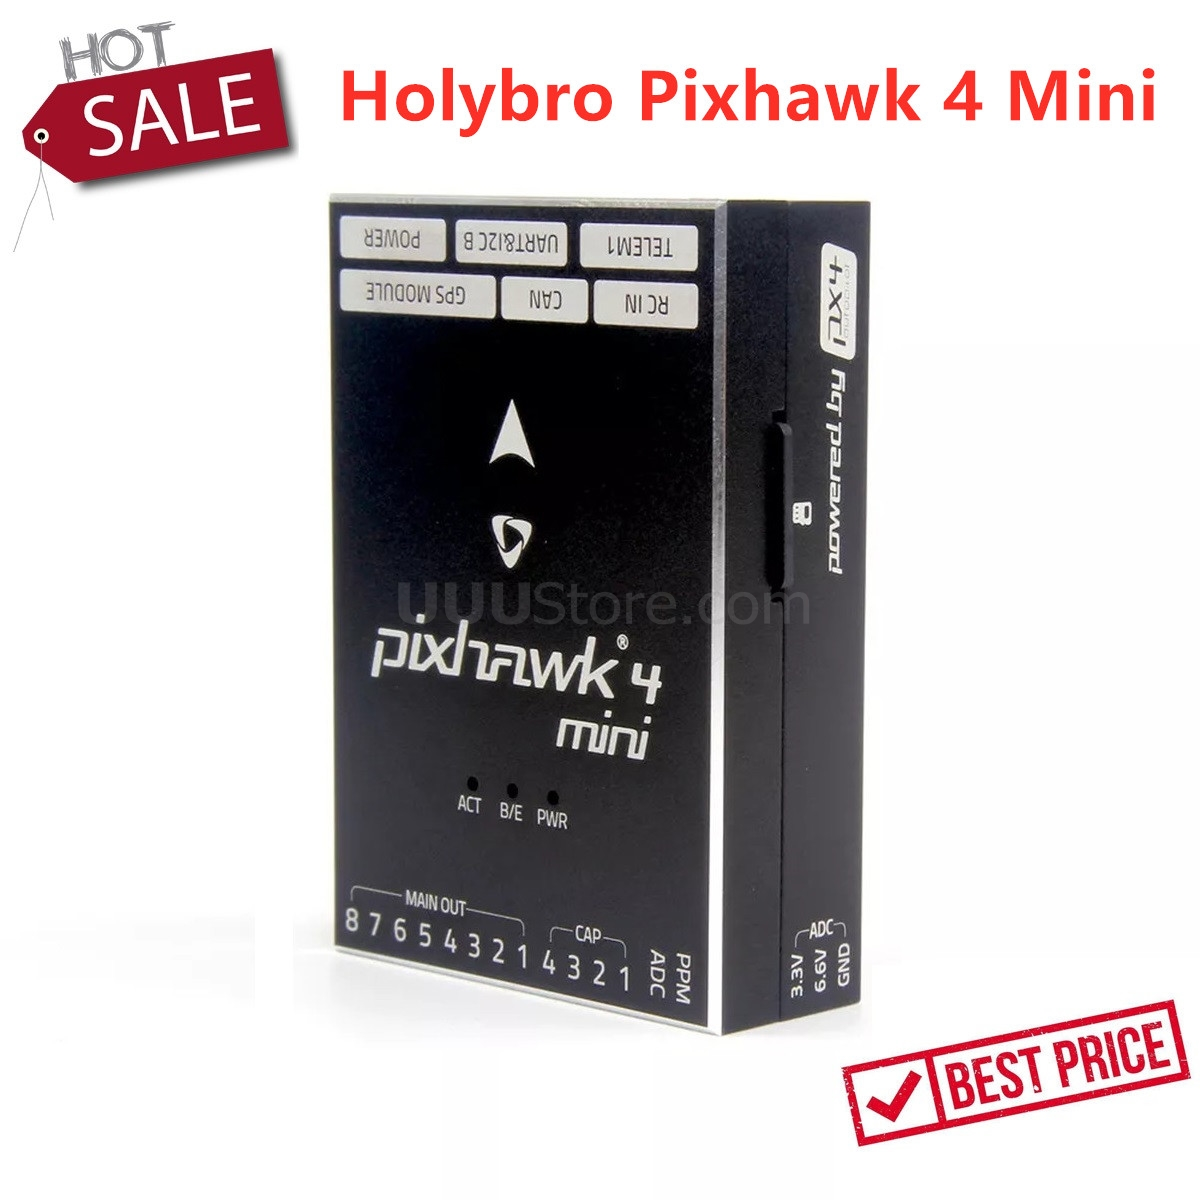 Holybro Pixhawk 4 Mini Autopilot Flight Controller PX4 Flight Control Pixhawk4 Mini For RC FPV Drone